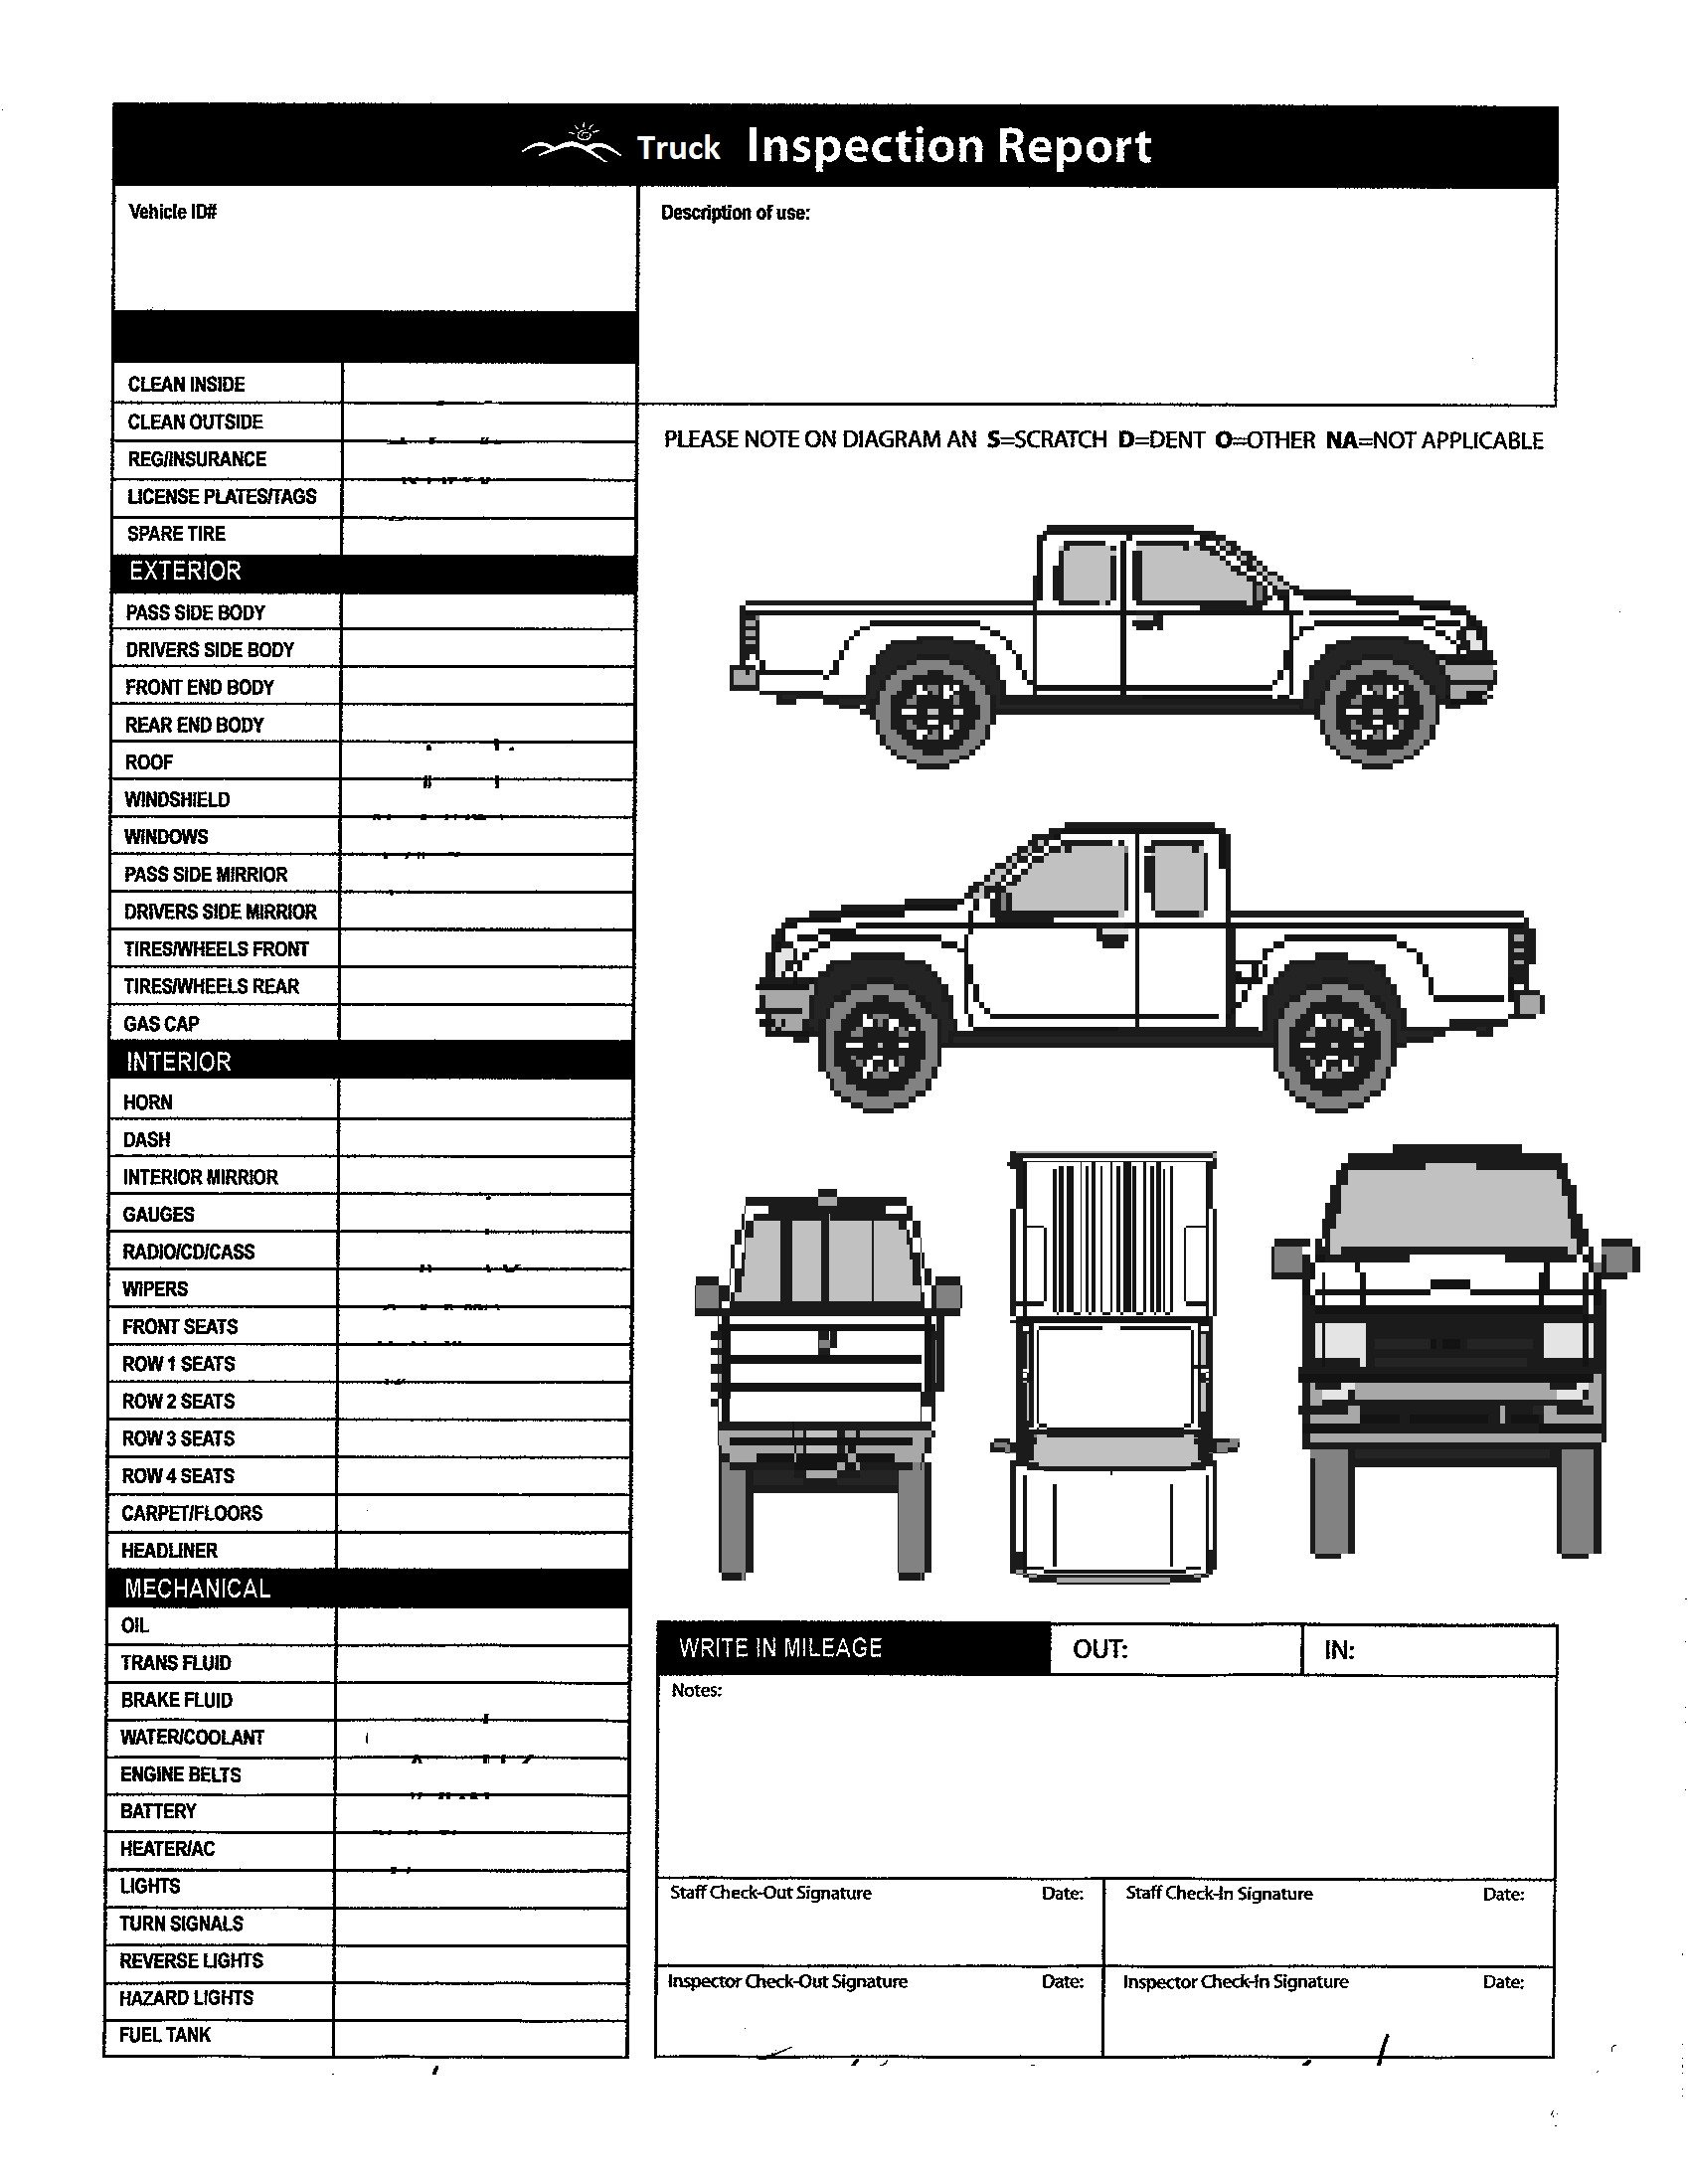 Truck Inspection form Template Vehicle Inspection form Template